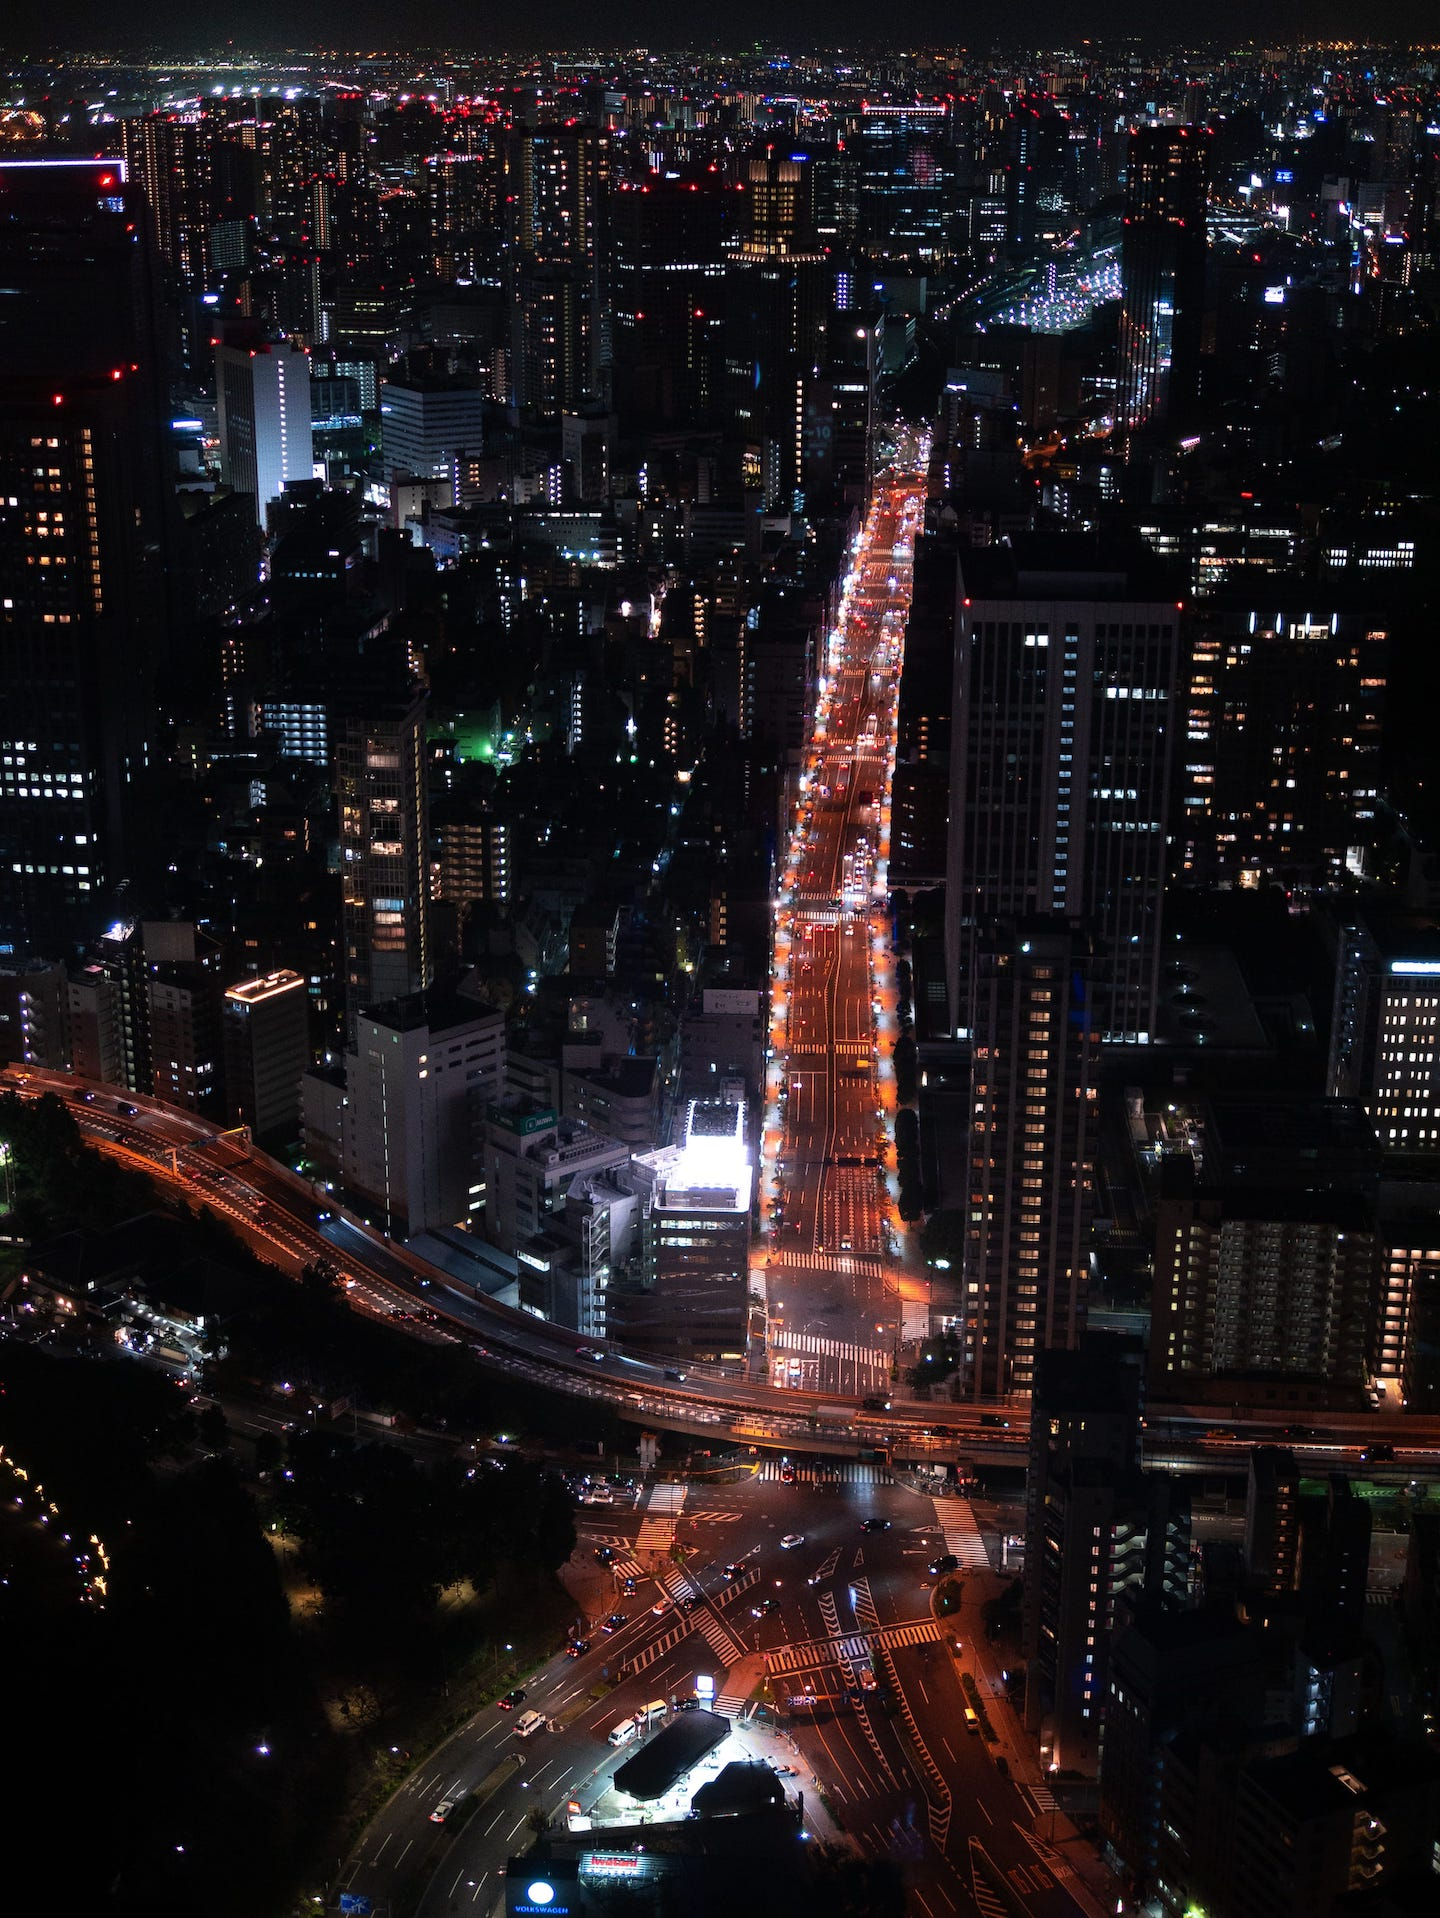 tokyo_nuit_anthony_marques_2